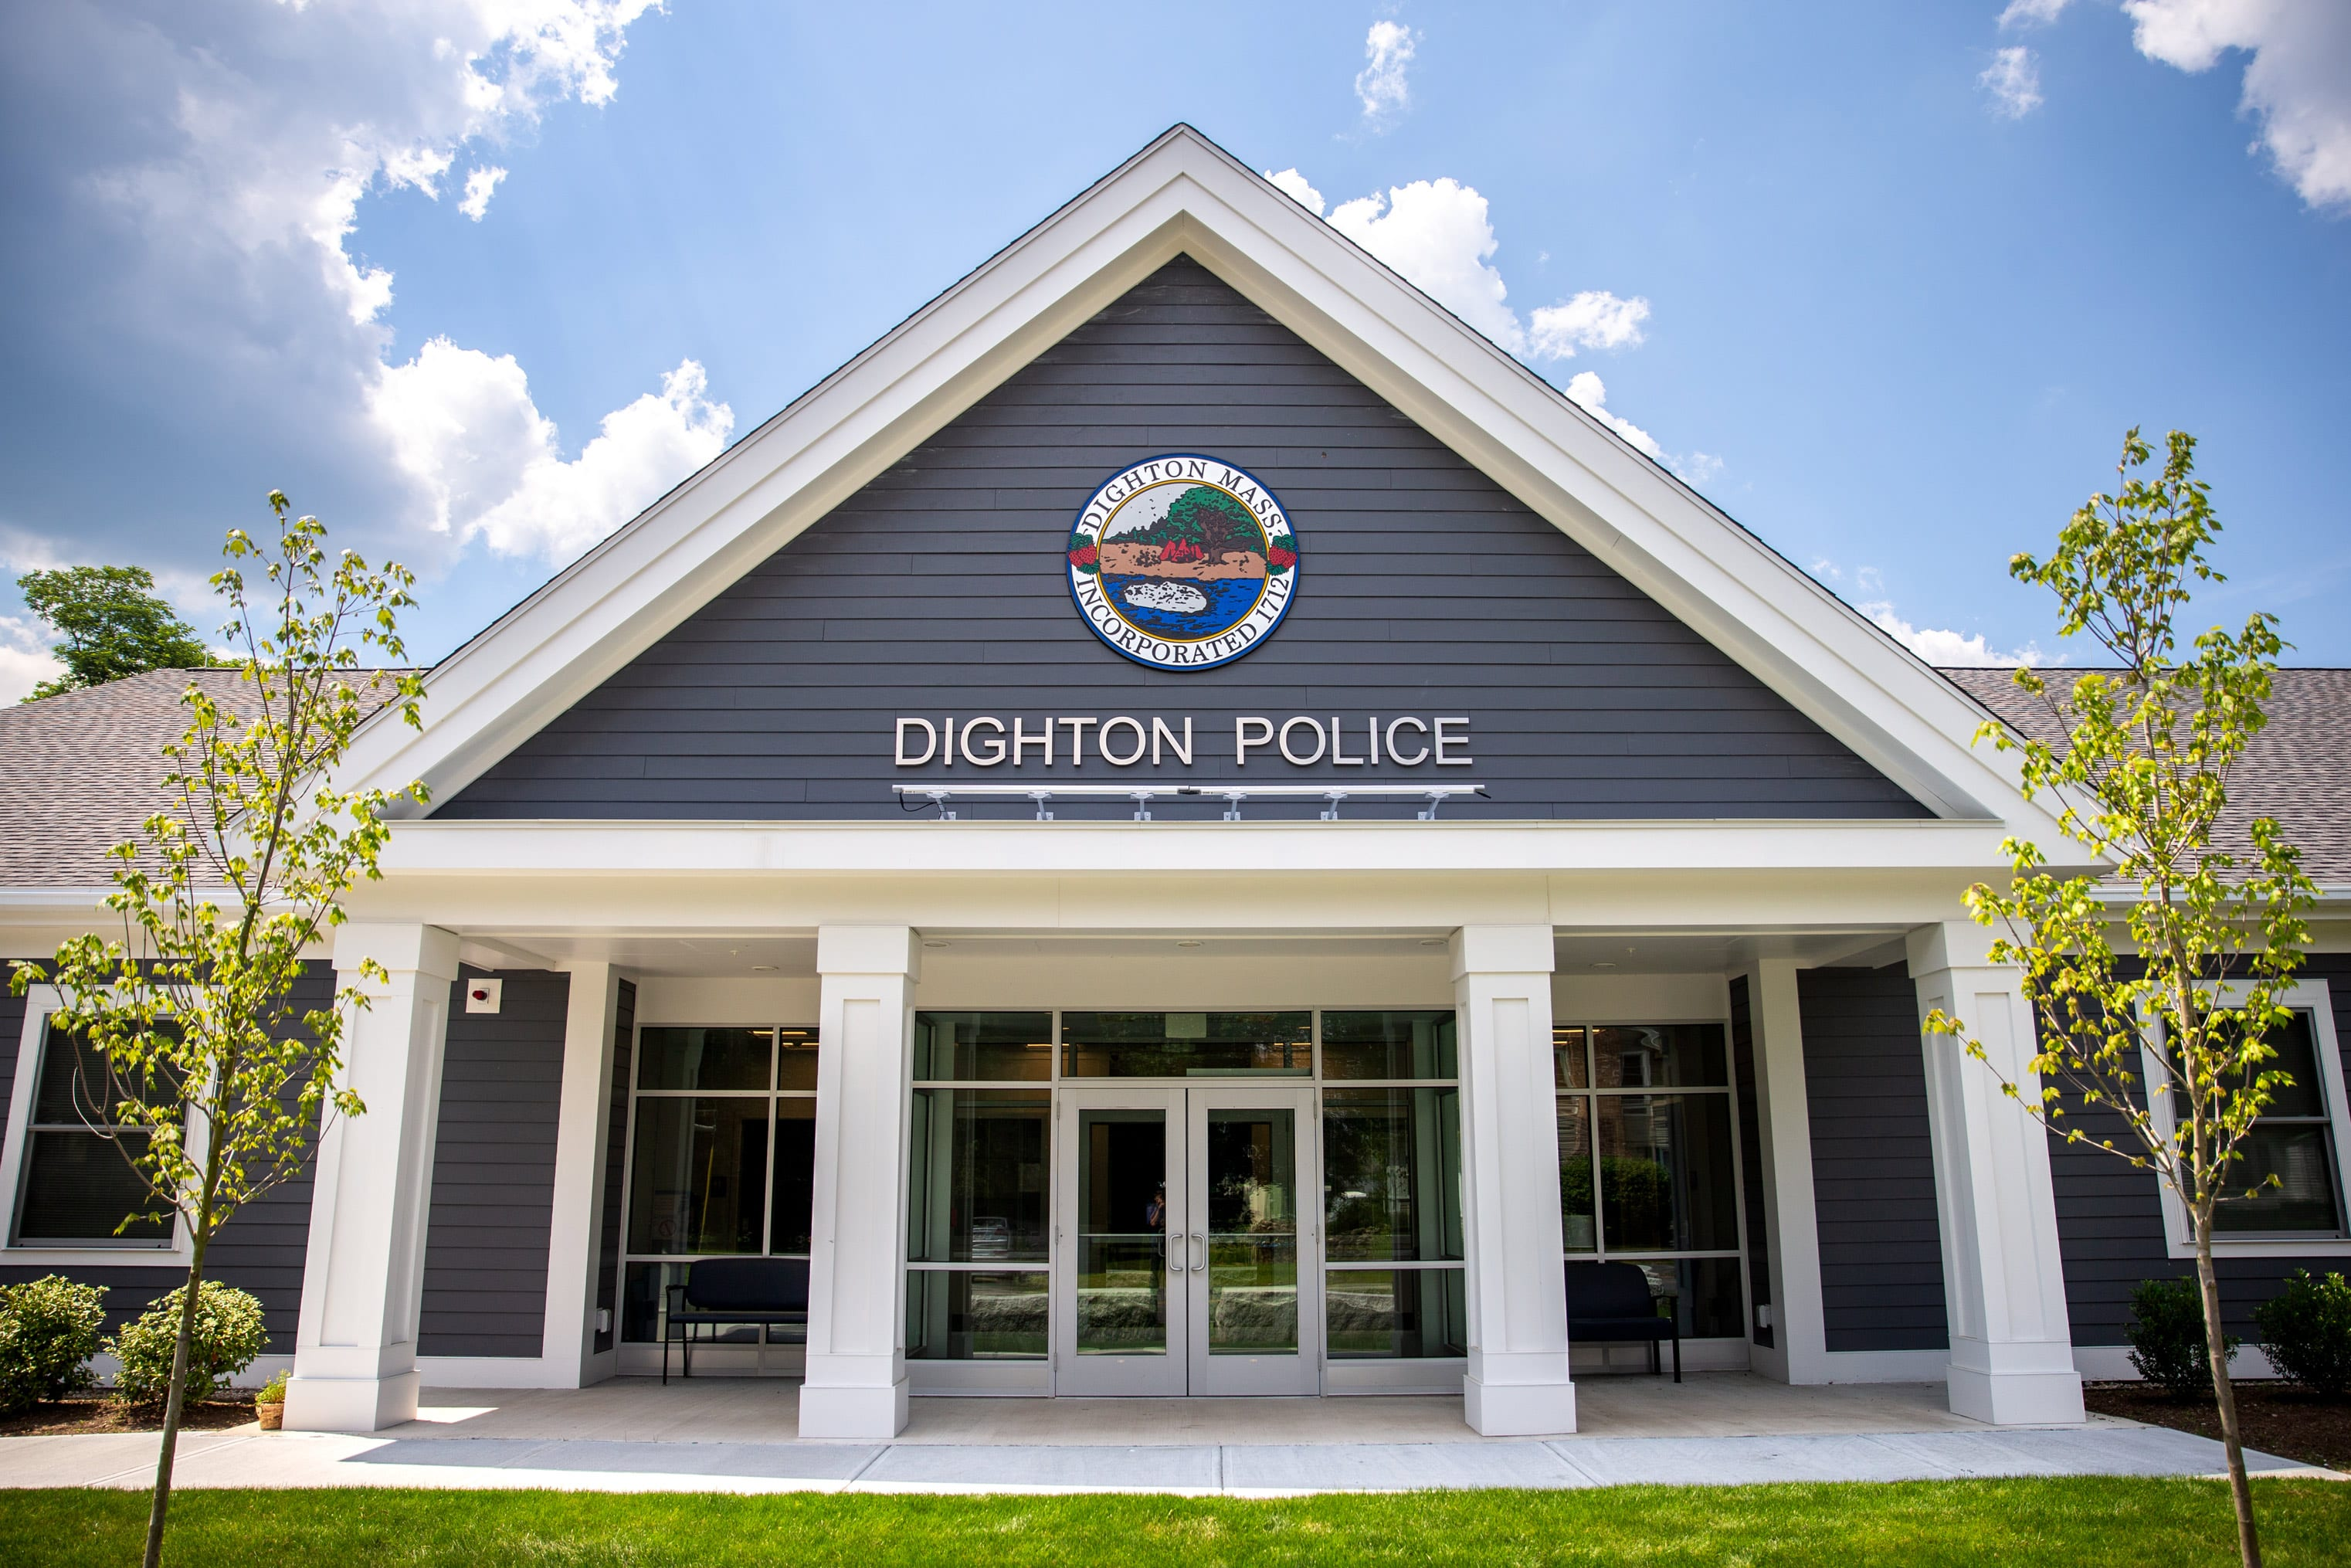 About the Dighton Police Department